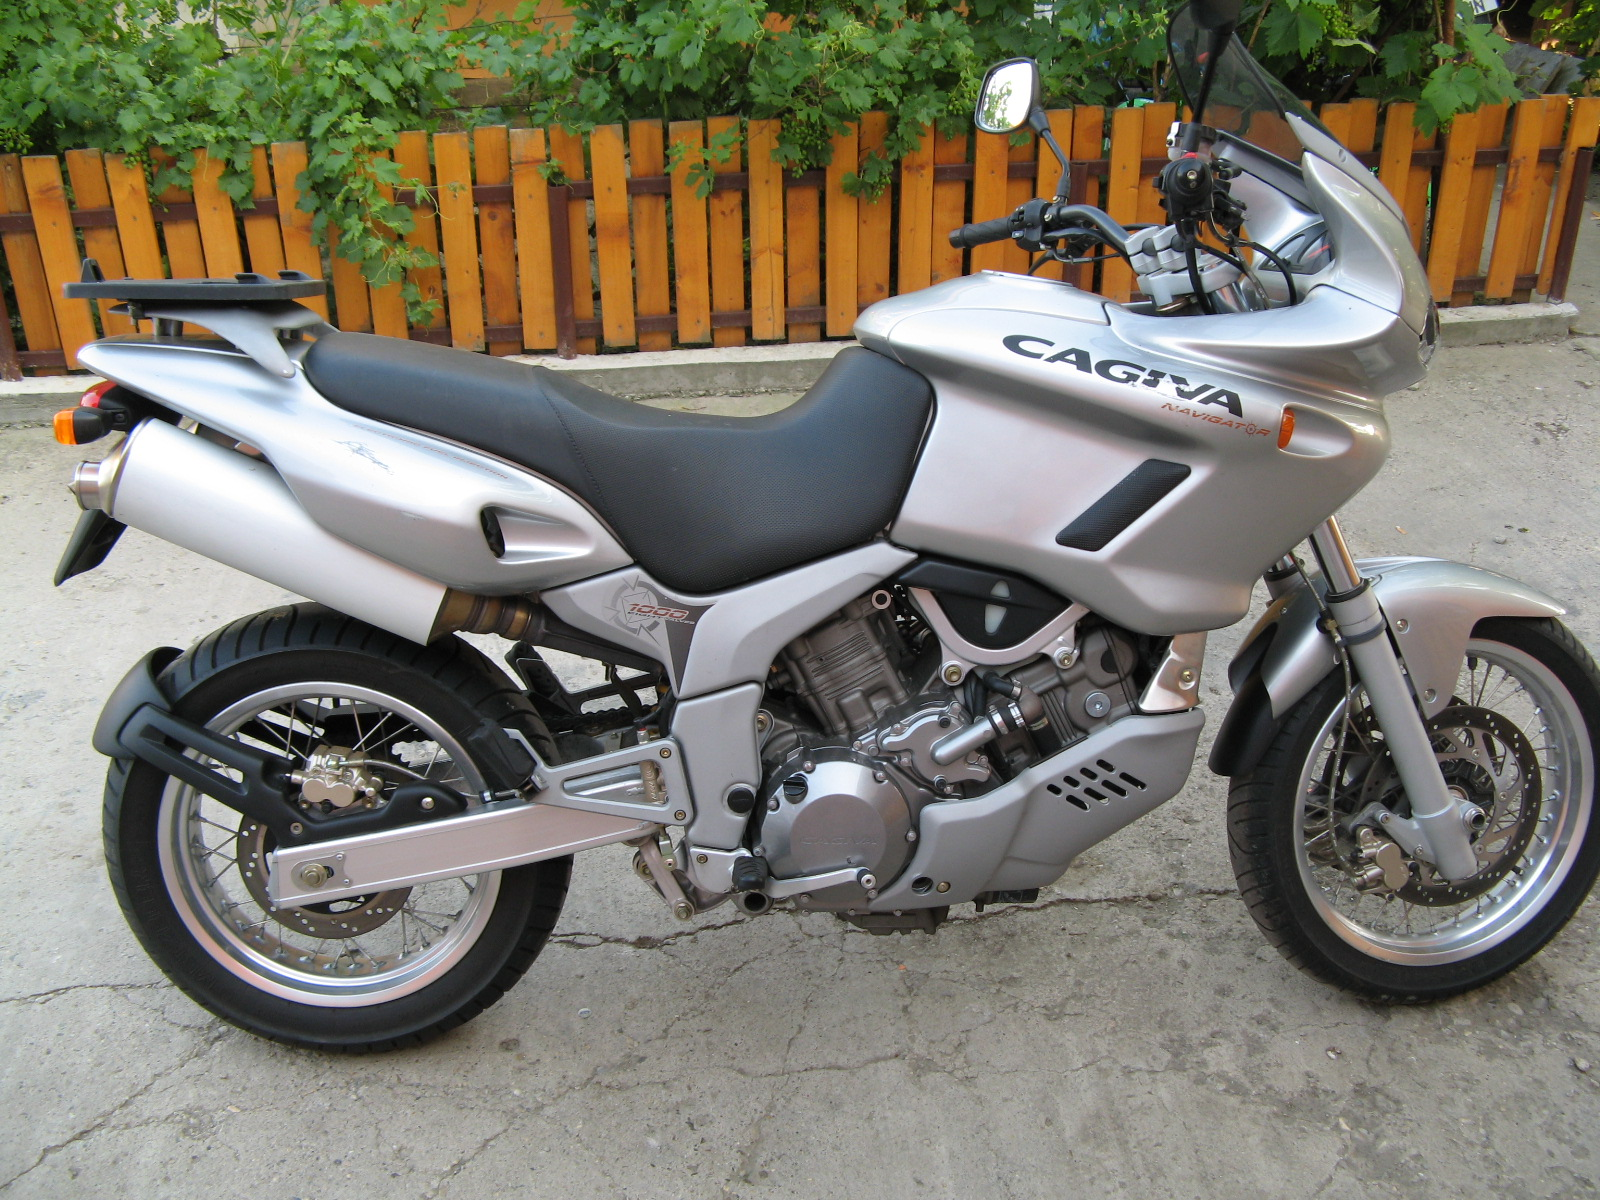 Cagiva Navigator 1000 2002 images #162843